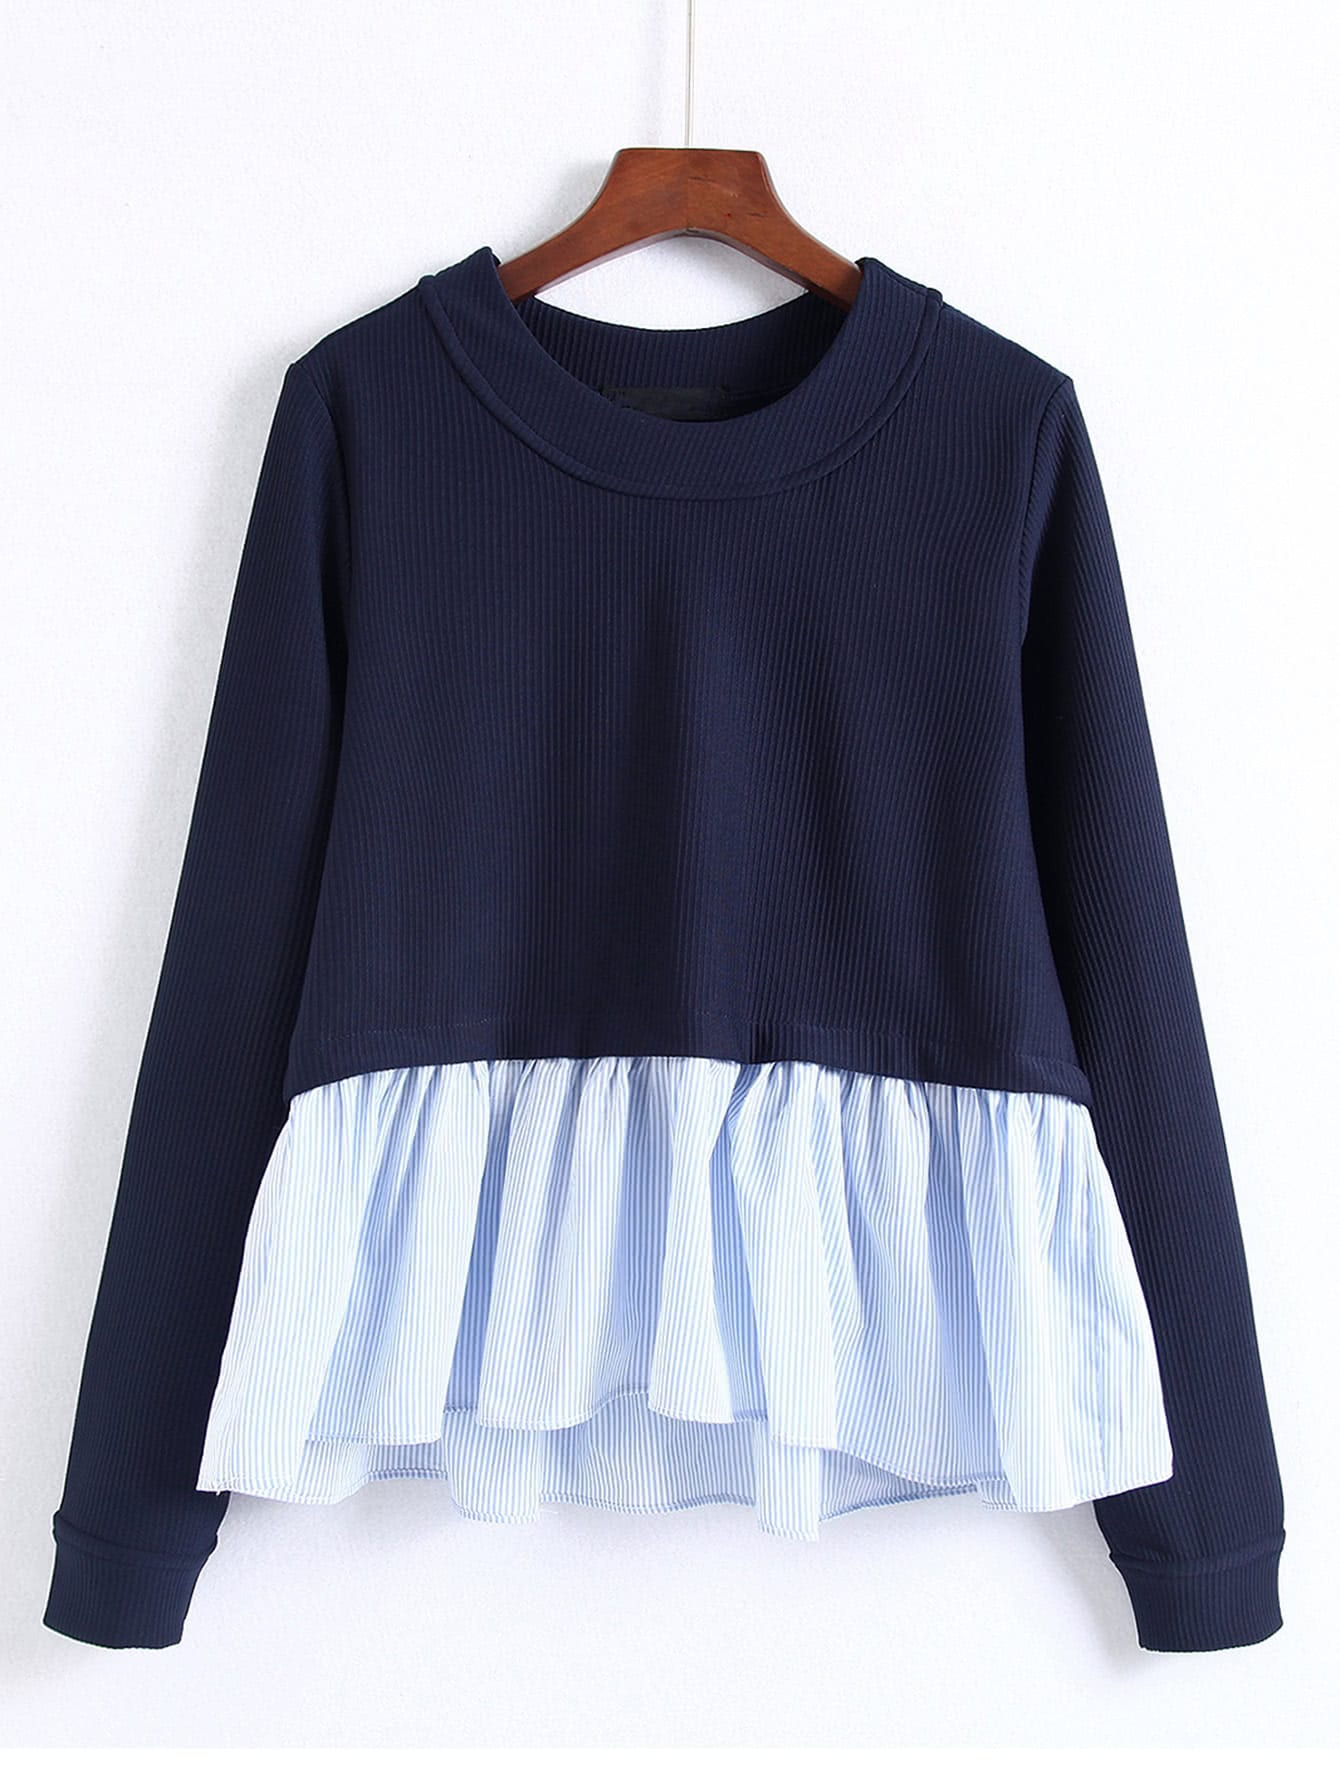 Pinstriped Frill Hem Babaydoll Sweatshirt zip back frill neck and hem sweatshirt